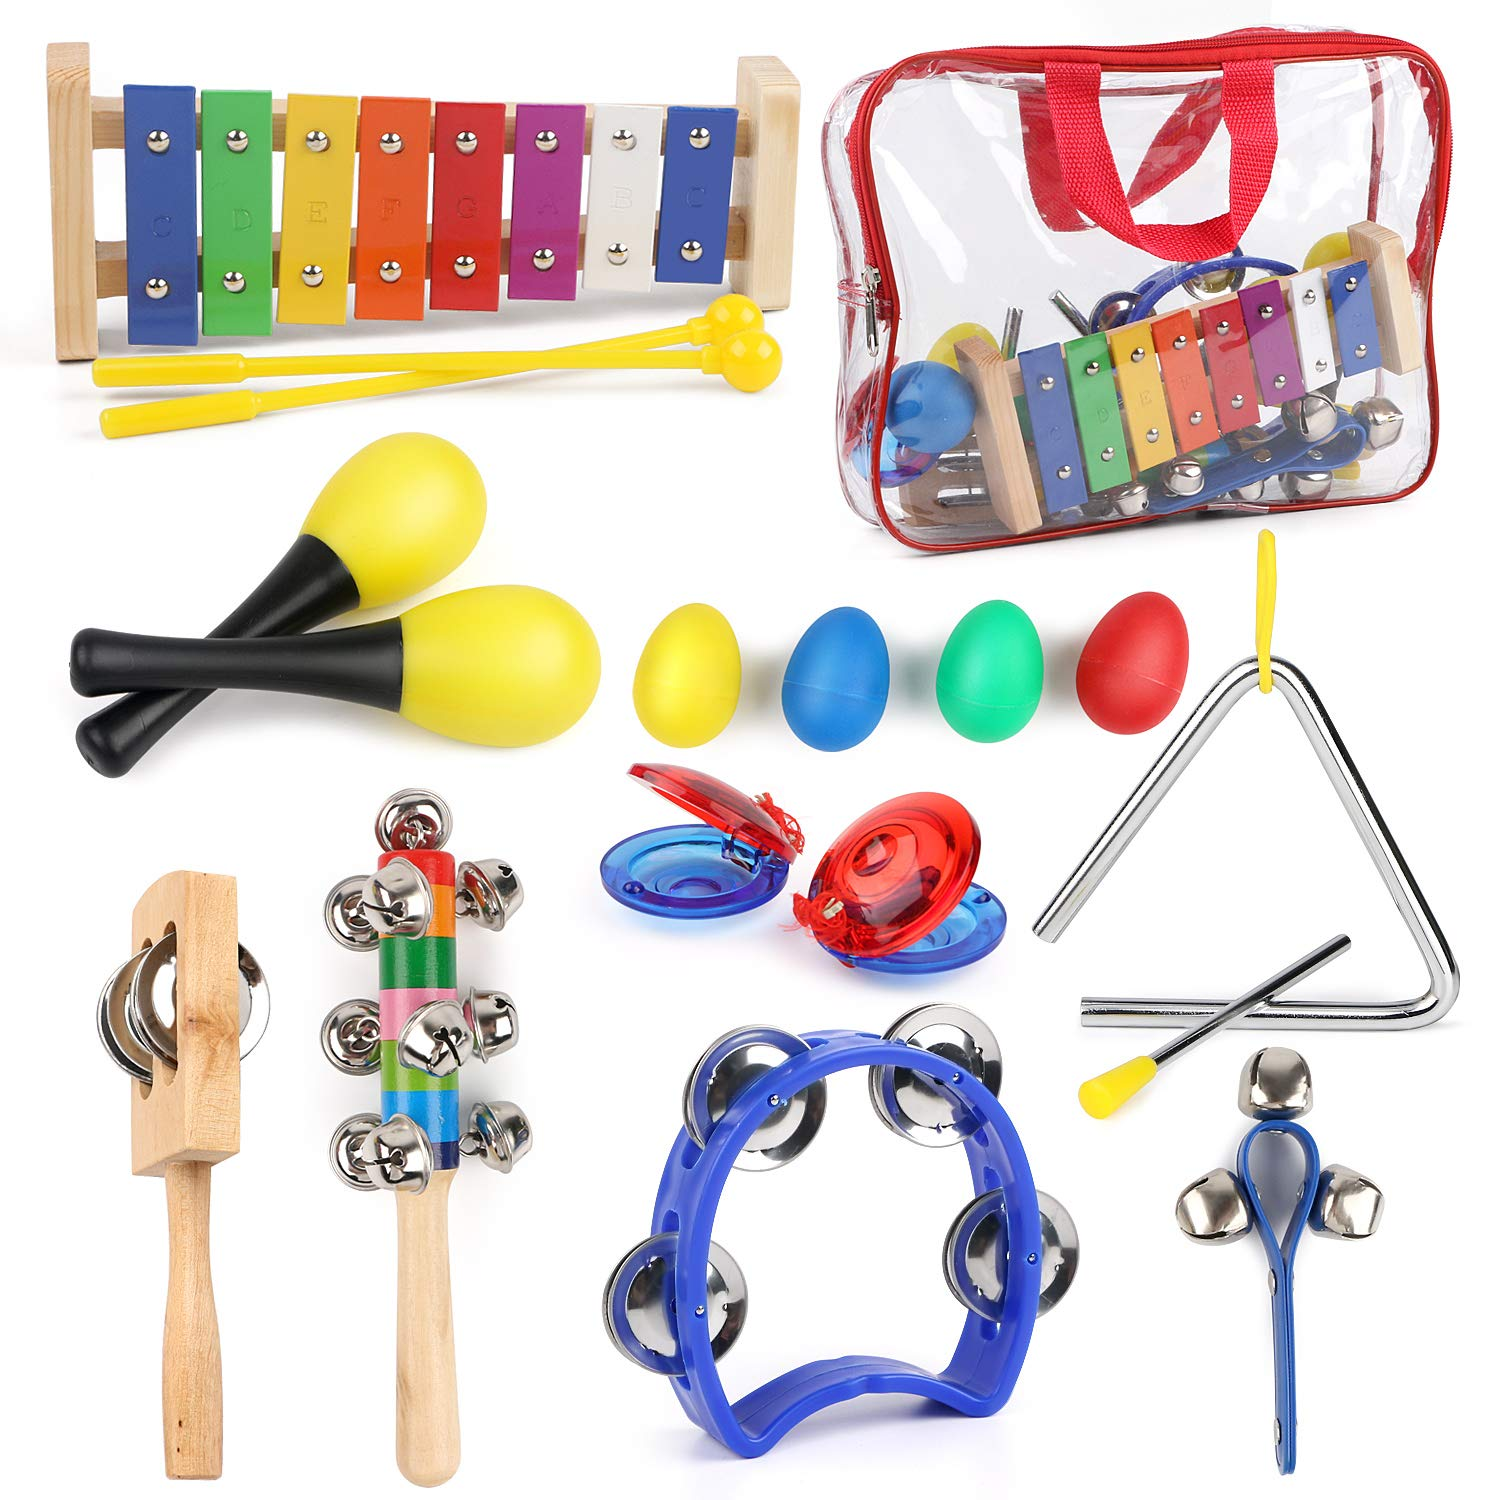 HuoBi Percussion Musical Instruments Toy Set,12Pcs Wooden Percussion Instruments Preschool Educational Toys Bells Egg Shaker with Carry Bag ,Great Party Favors Musical Toys Set for Kids (12pcs)